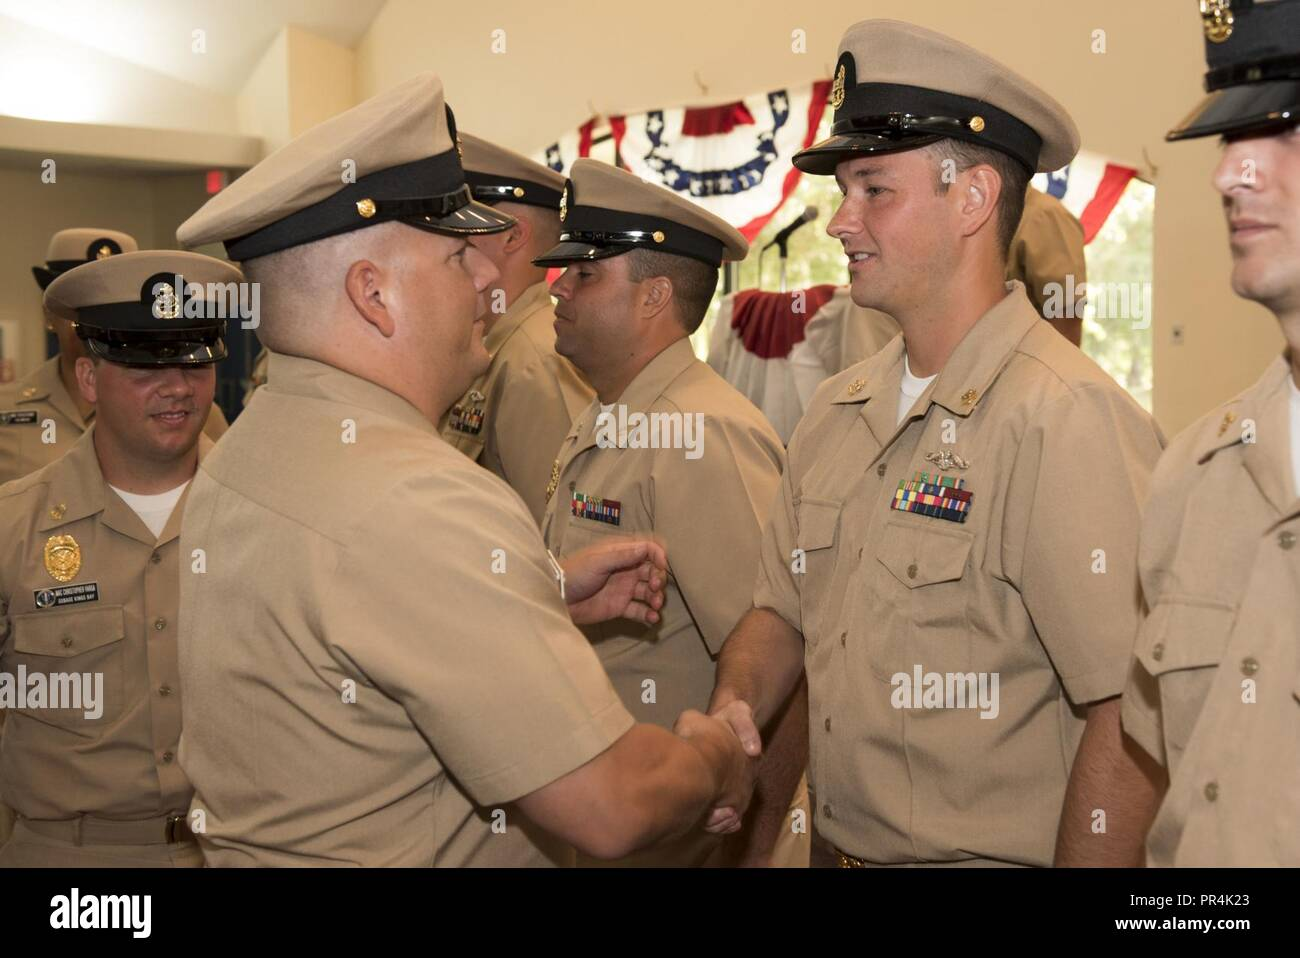 KINGS BAY, Georgia (Sept. 14, 2018) Chief Culinary Specialist (Submarines) Ryan Singleton is congratulated by his sponsor during Naval Submarine Base Kings Bay's 2018 chief petty officer pinning ceremony.  The base is home to six of the Ohio-class ballistic-missile submarines that make up the most survivable leg of the nuclear missile triad. - Stock Image